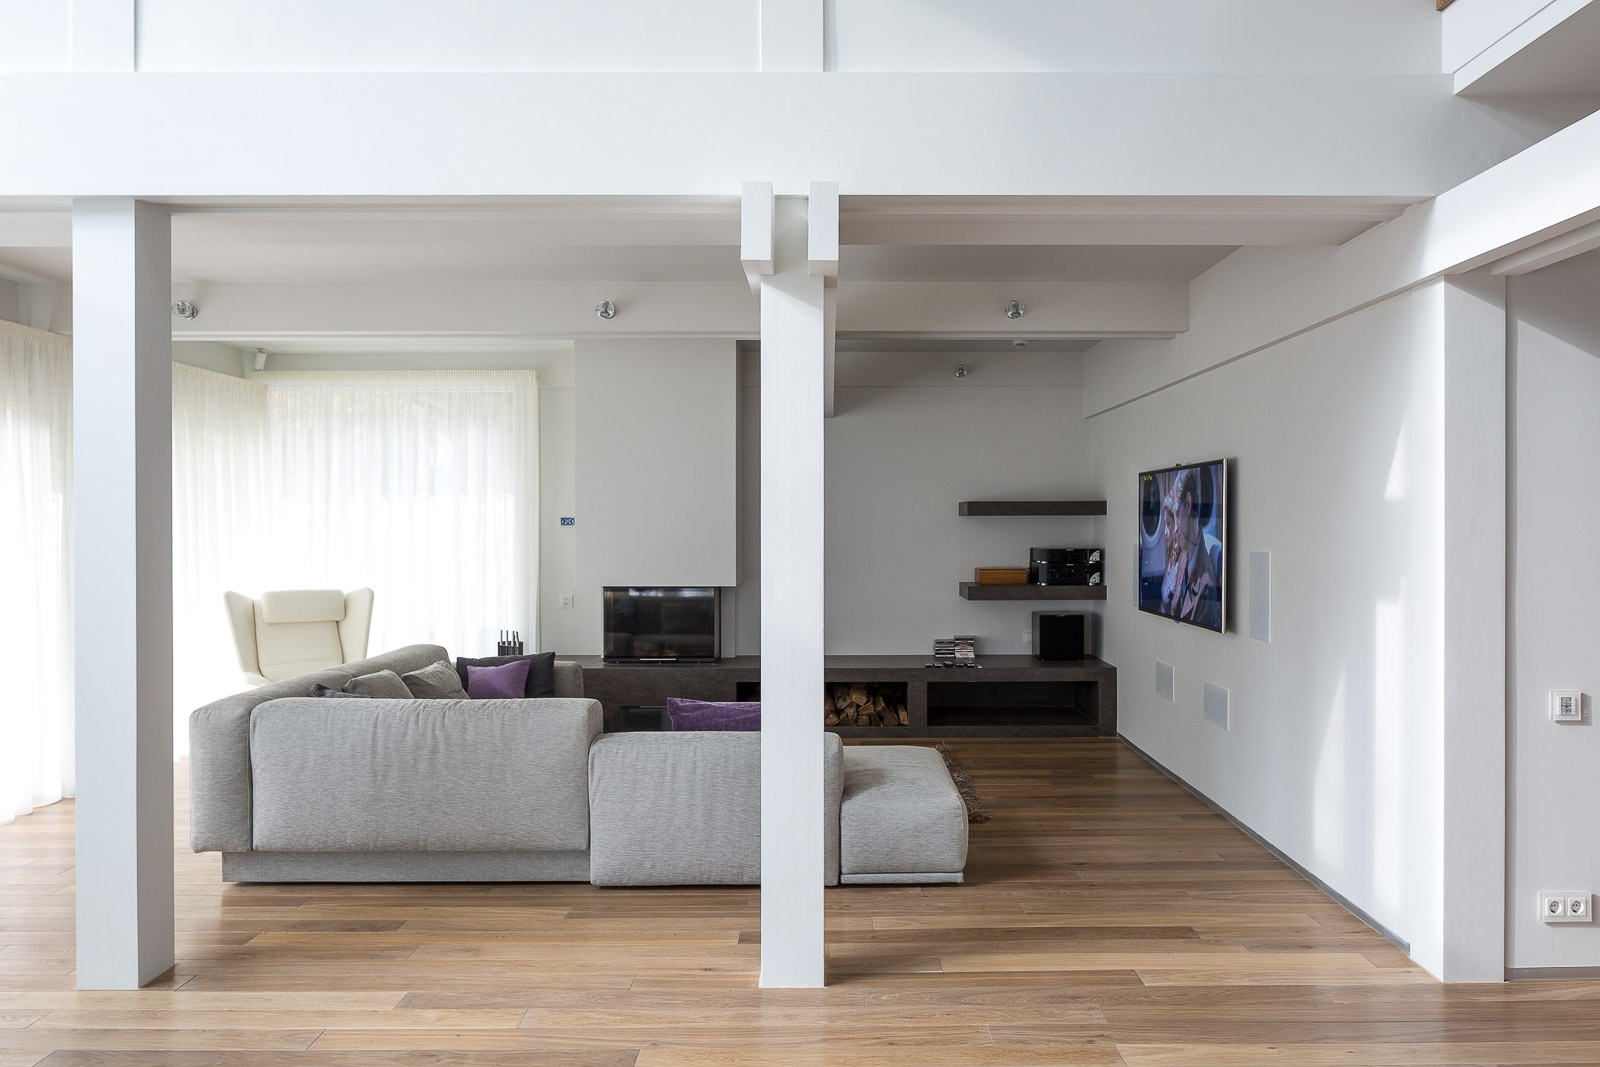 Interior of living room in white colors